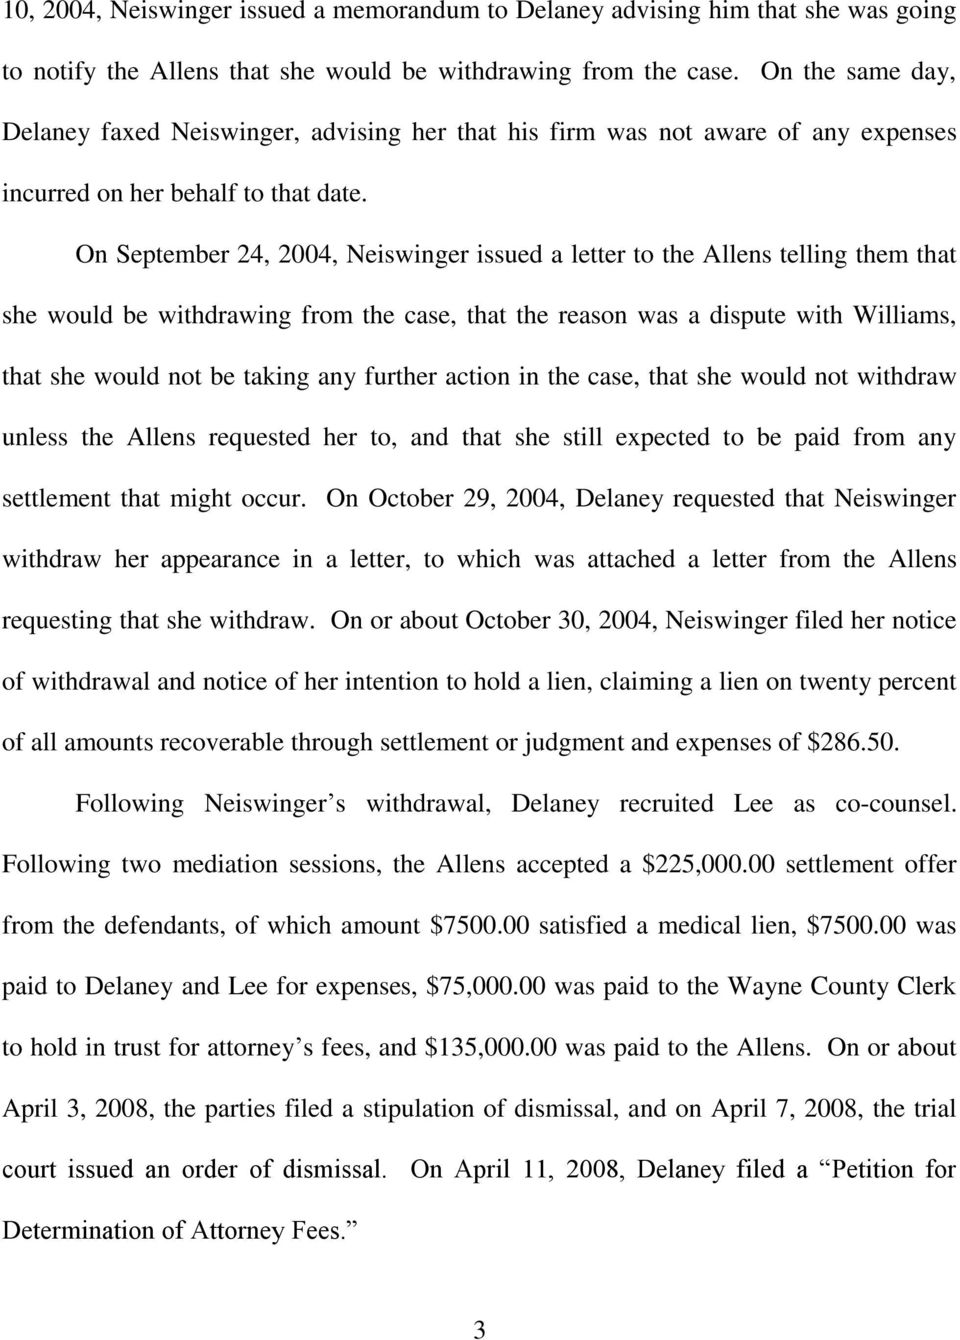 On September 24, 2004, Neiswinger issued a letter to the Allens telling them that she would be withdrawing from the case, that the reason was a dispute with Williams, that she would not be taking any